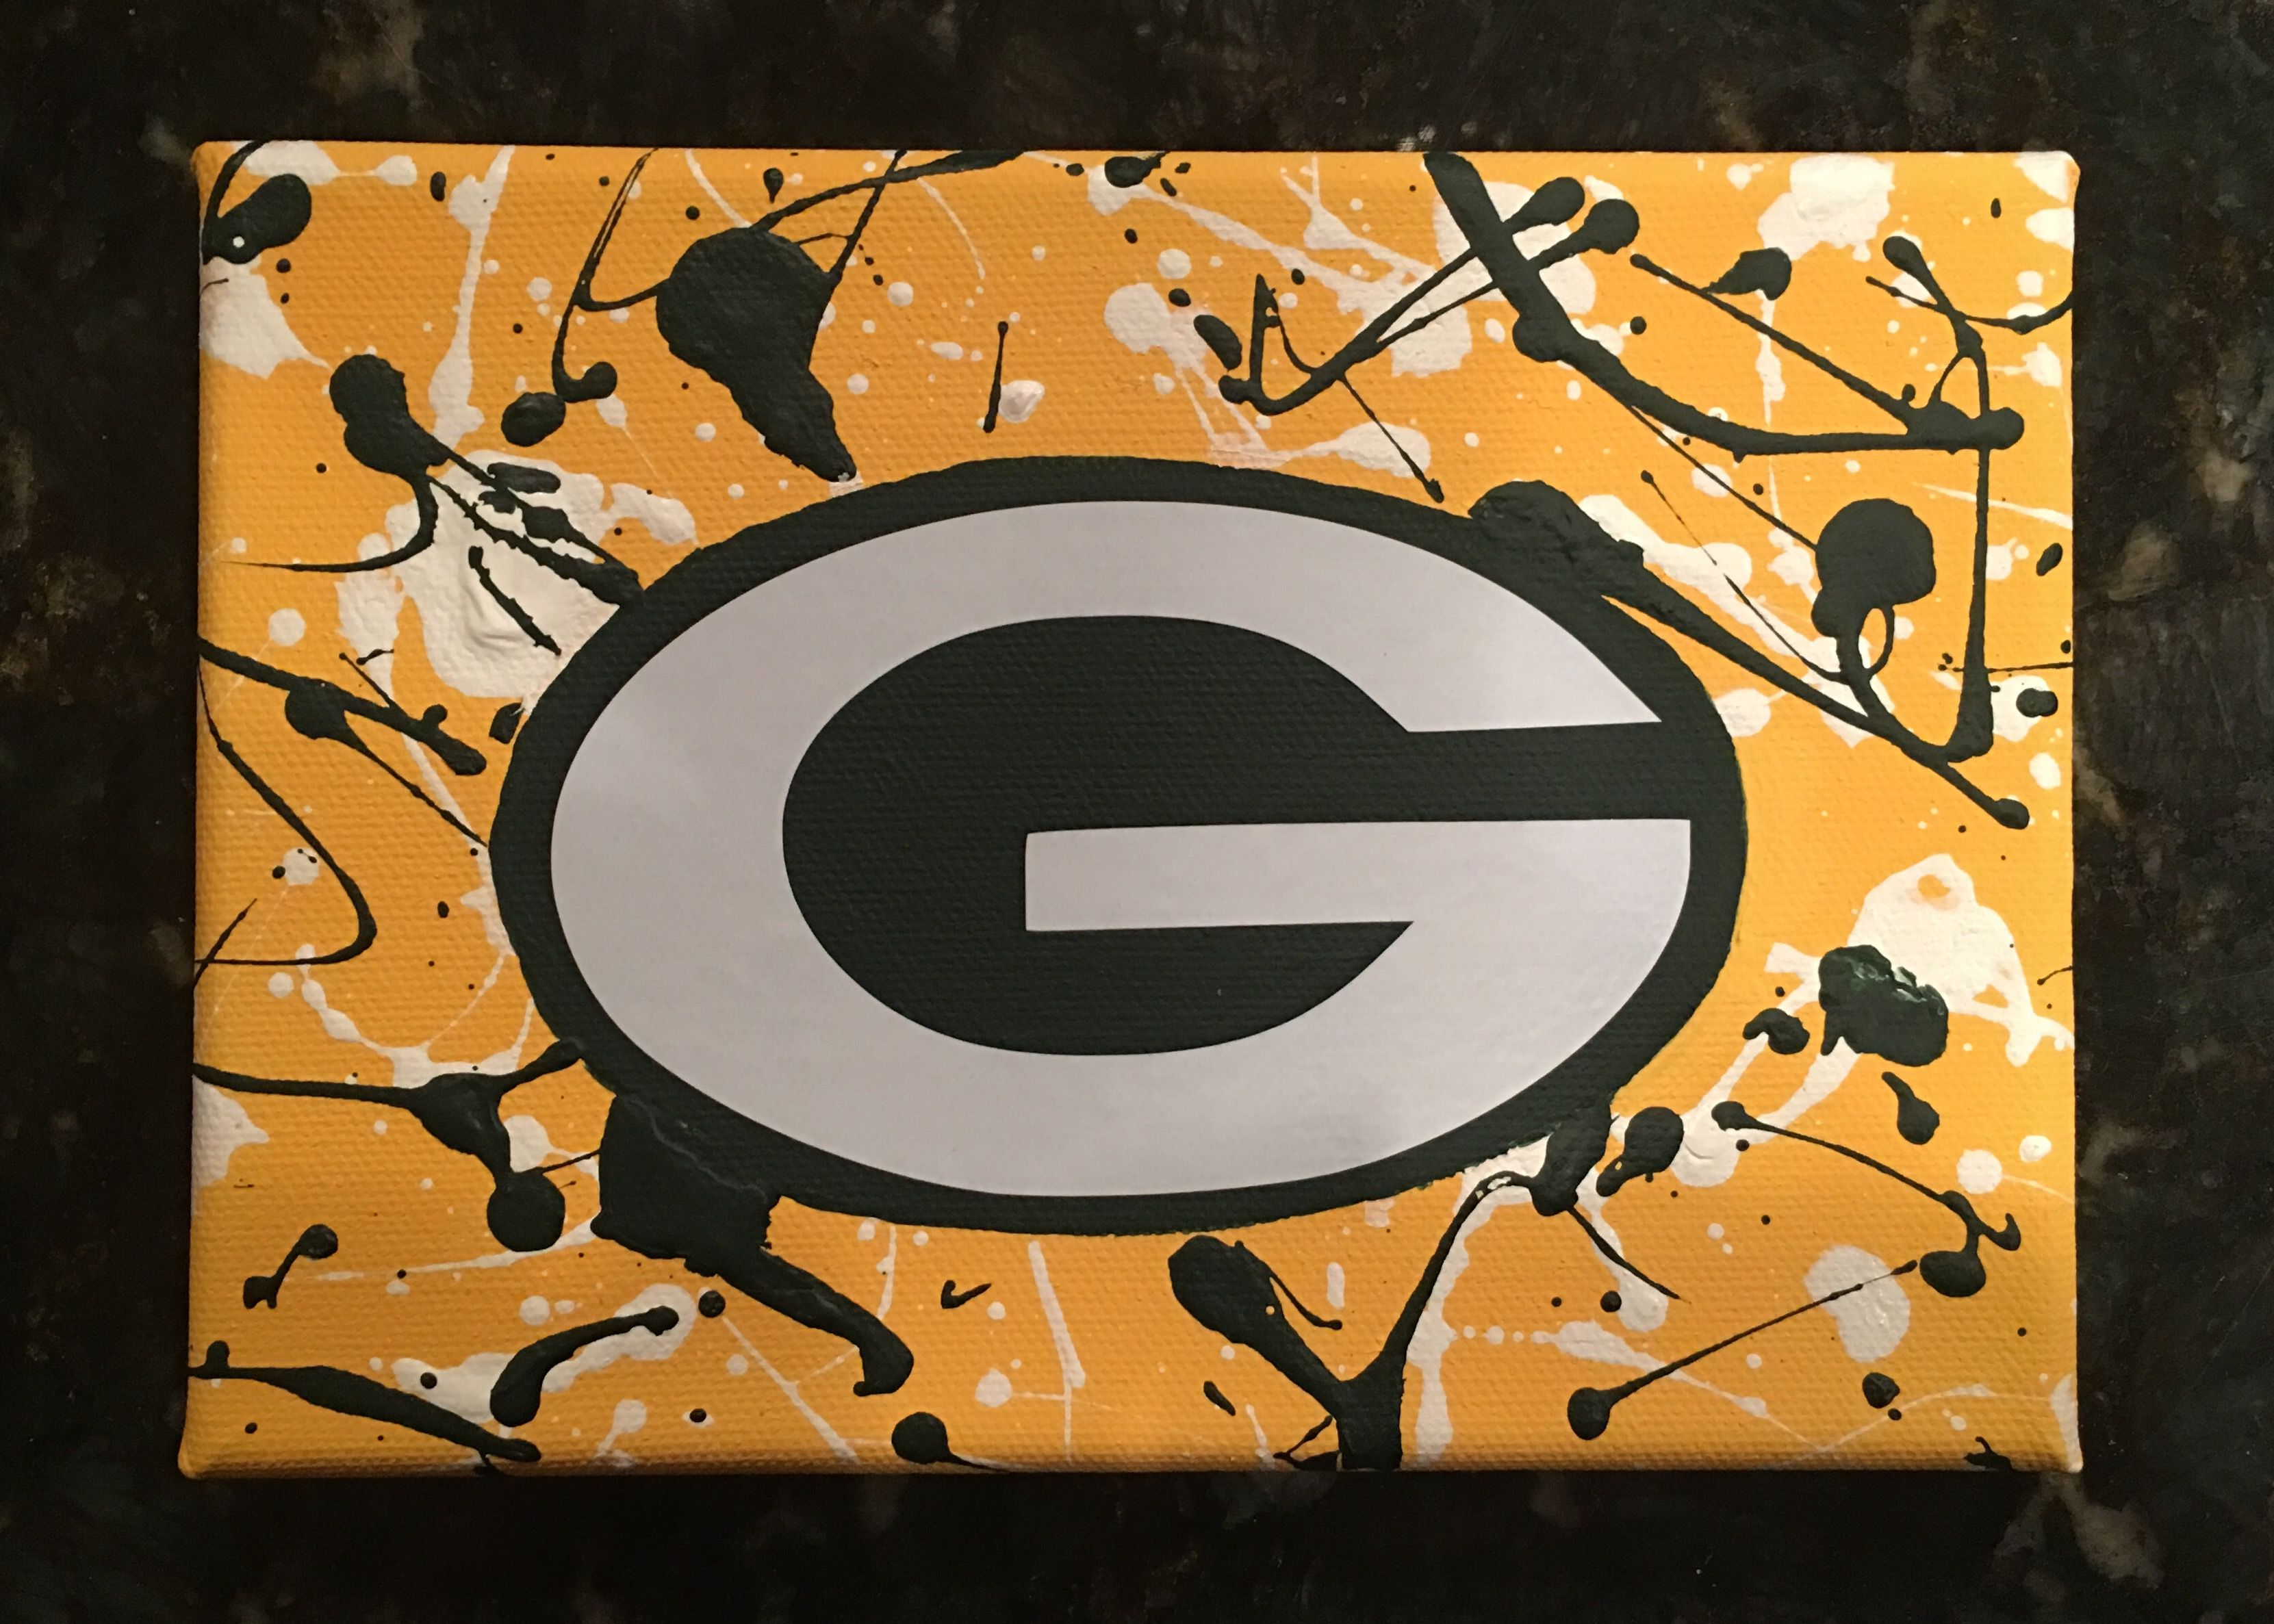 Purple Rose Designs Green Bay Packers Logo 2016 Christmas Gift For Dad Handmade Mixed Media Canvas In 2020 Canvas Painting Diy Green Bay Packers Logo Triptych Art